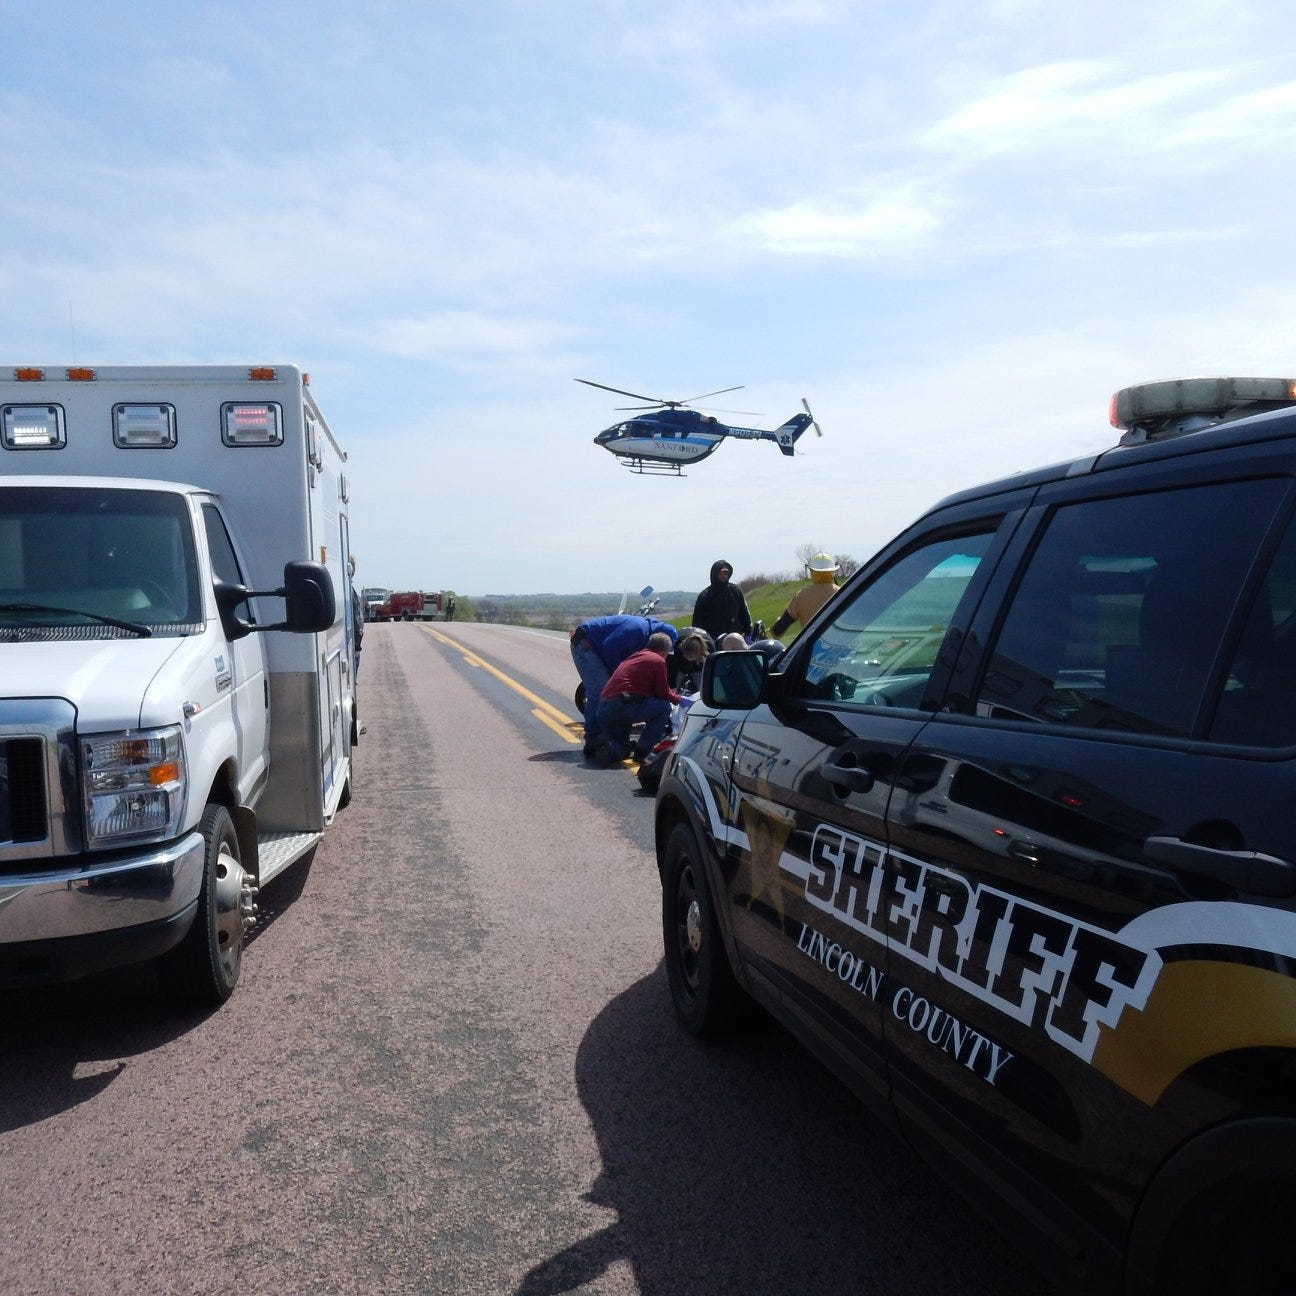 Equipment failure seriously injures motorcyclist in crash